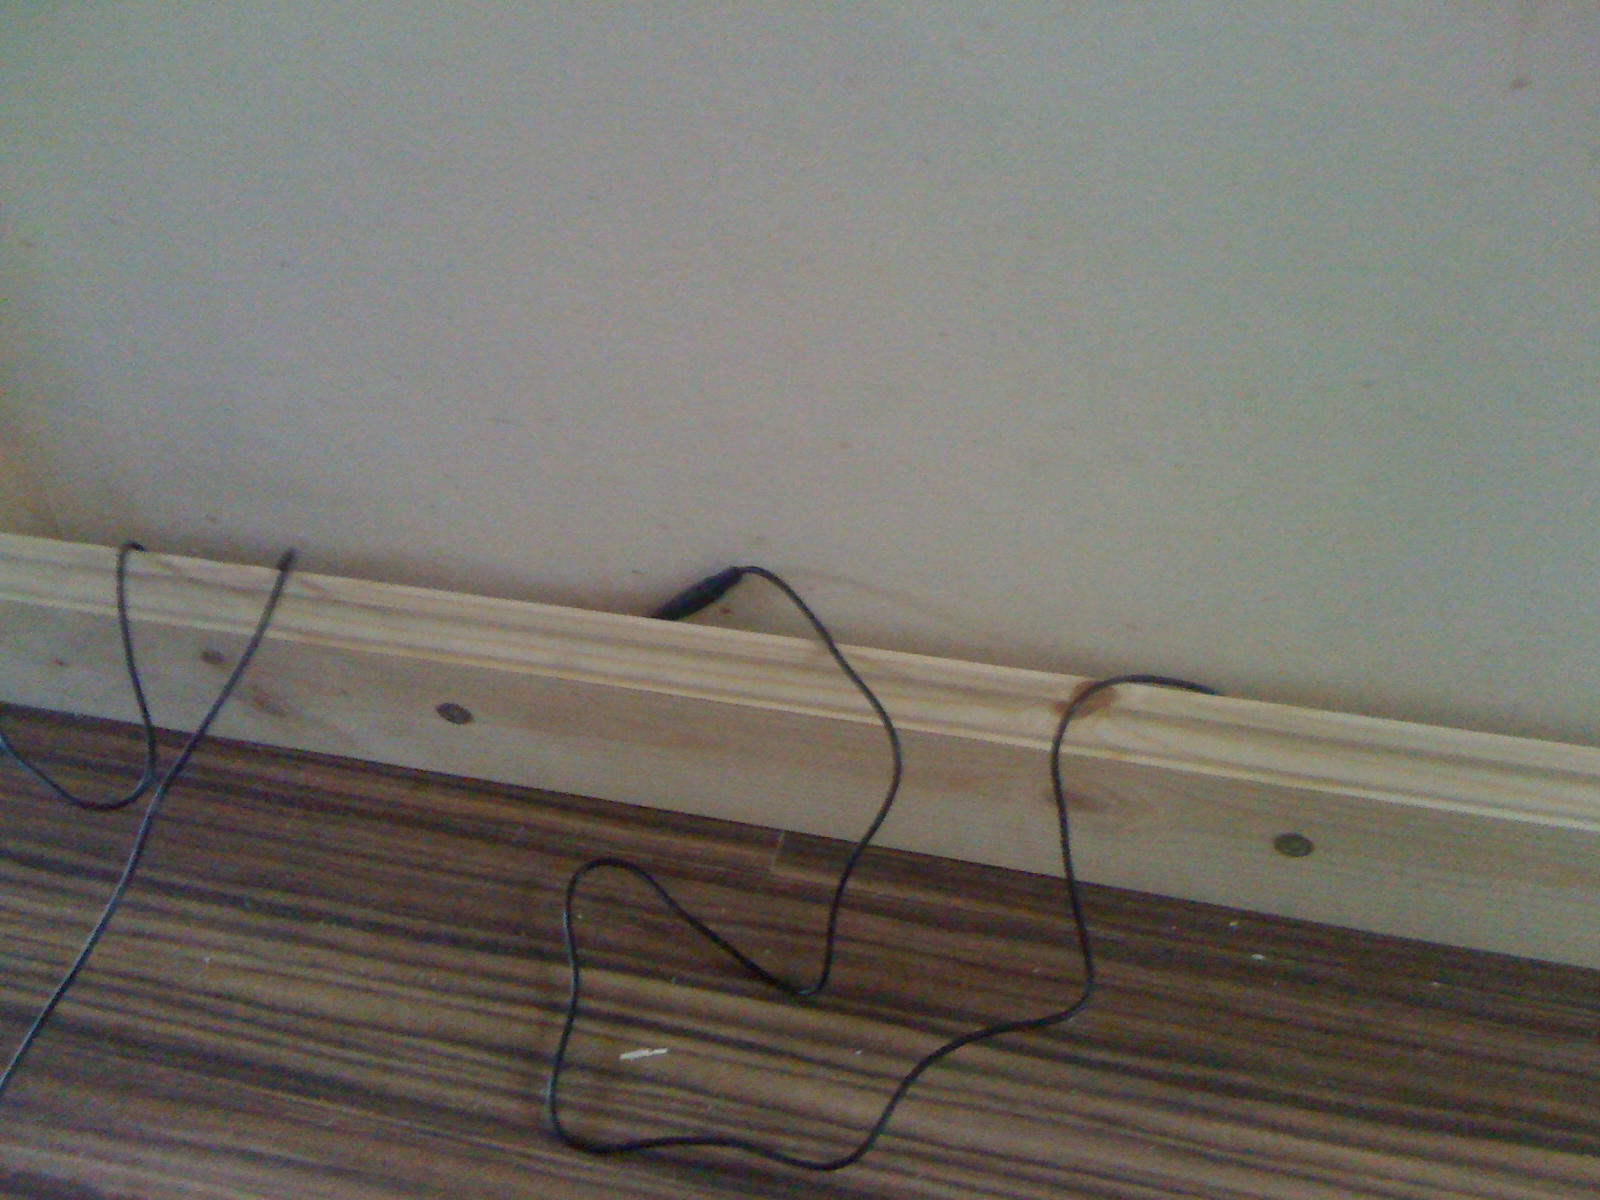 Magnificent Wiring Behind Skirting Boards Basic Electronics Wiring Diagram Wiring Cloud Hisonuggs Outletorg